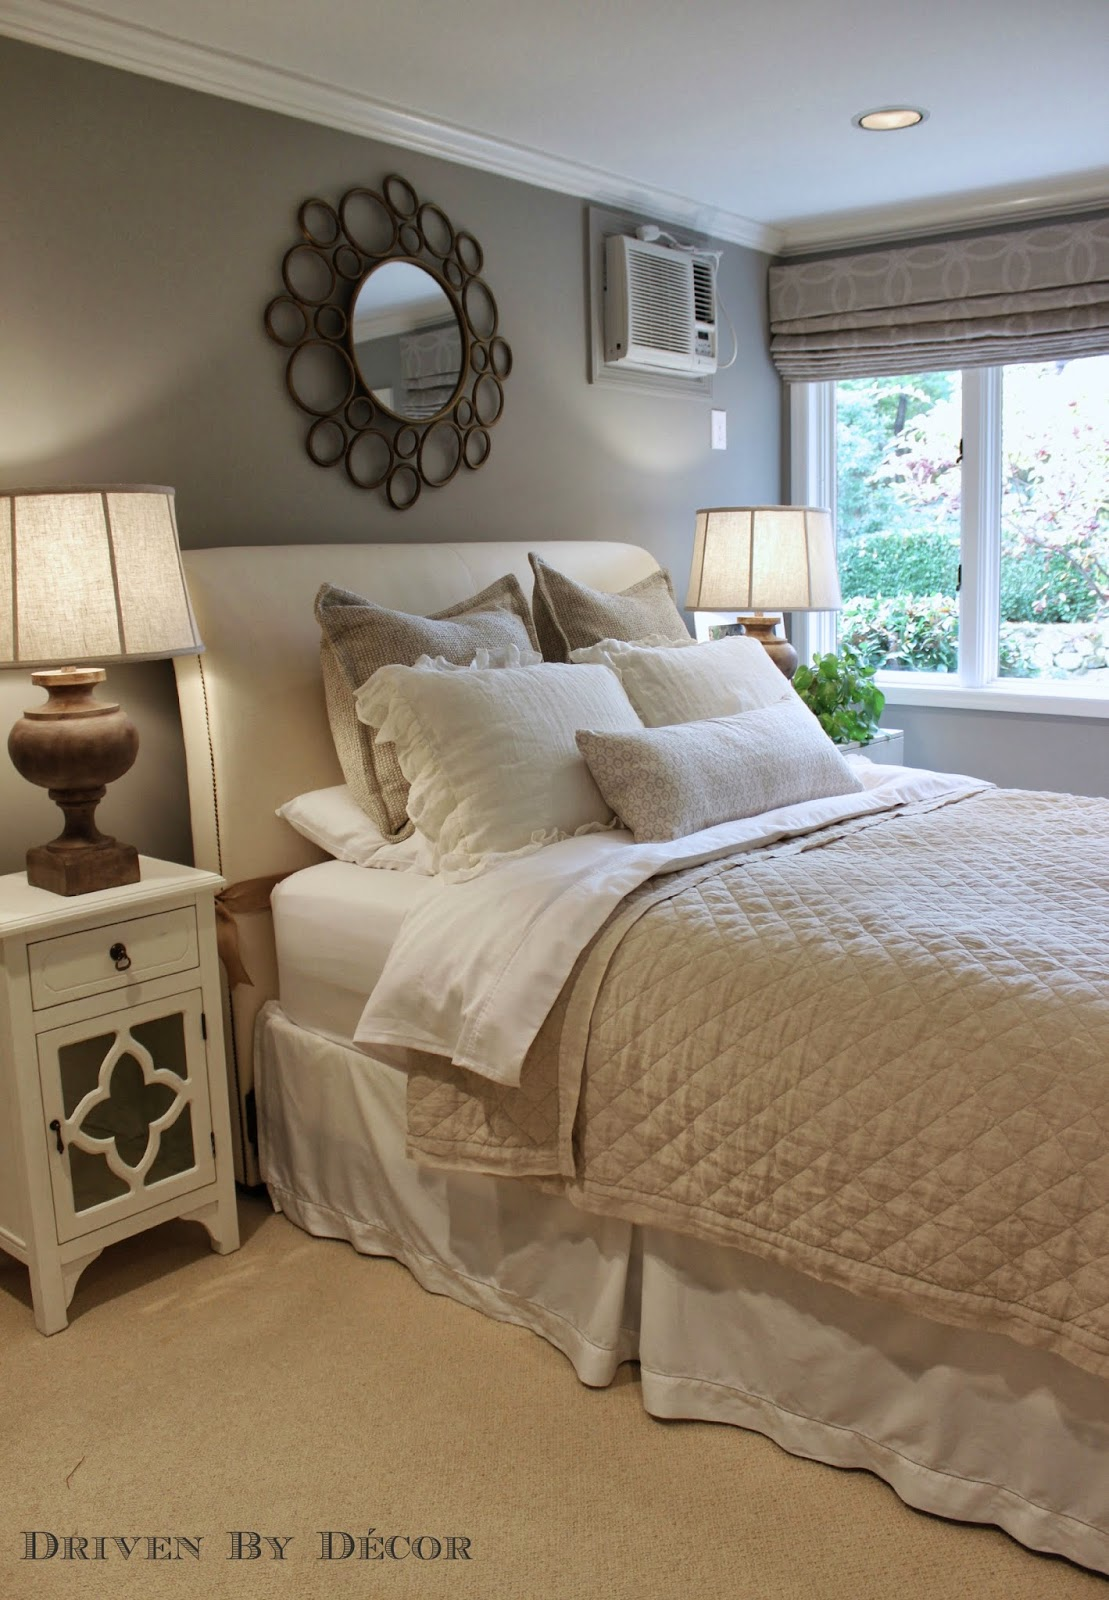 Guest Room Makeover   The Reveal. Guest Room Makeover   The Reveal    Driven by Decor